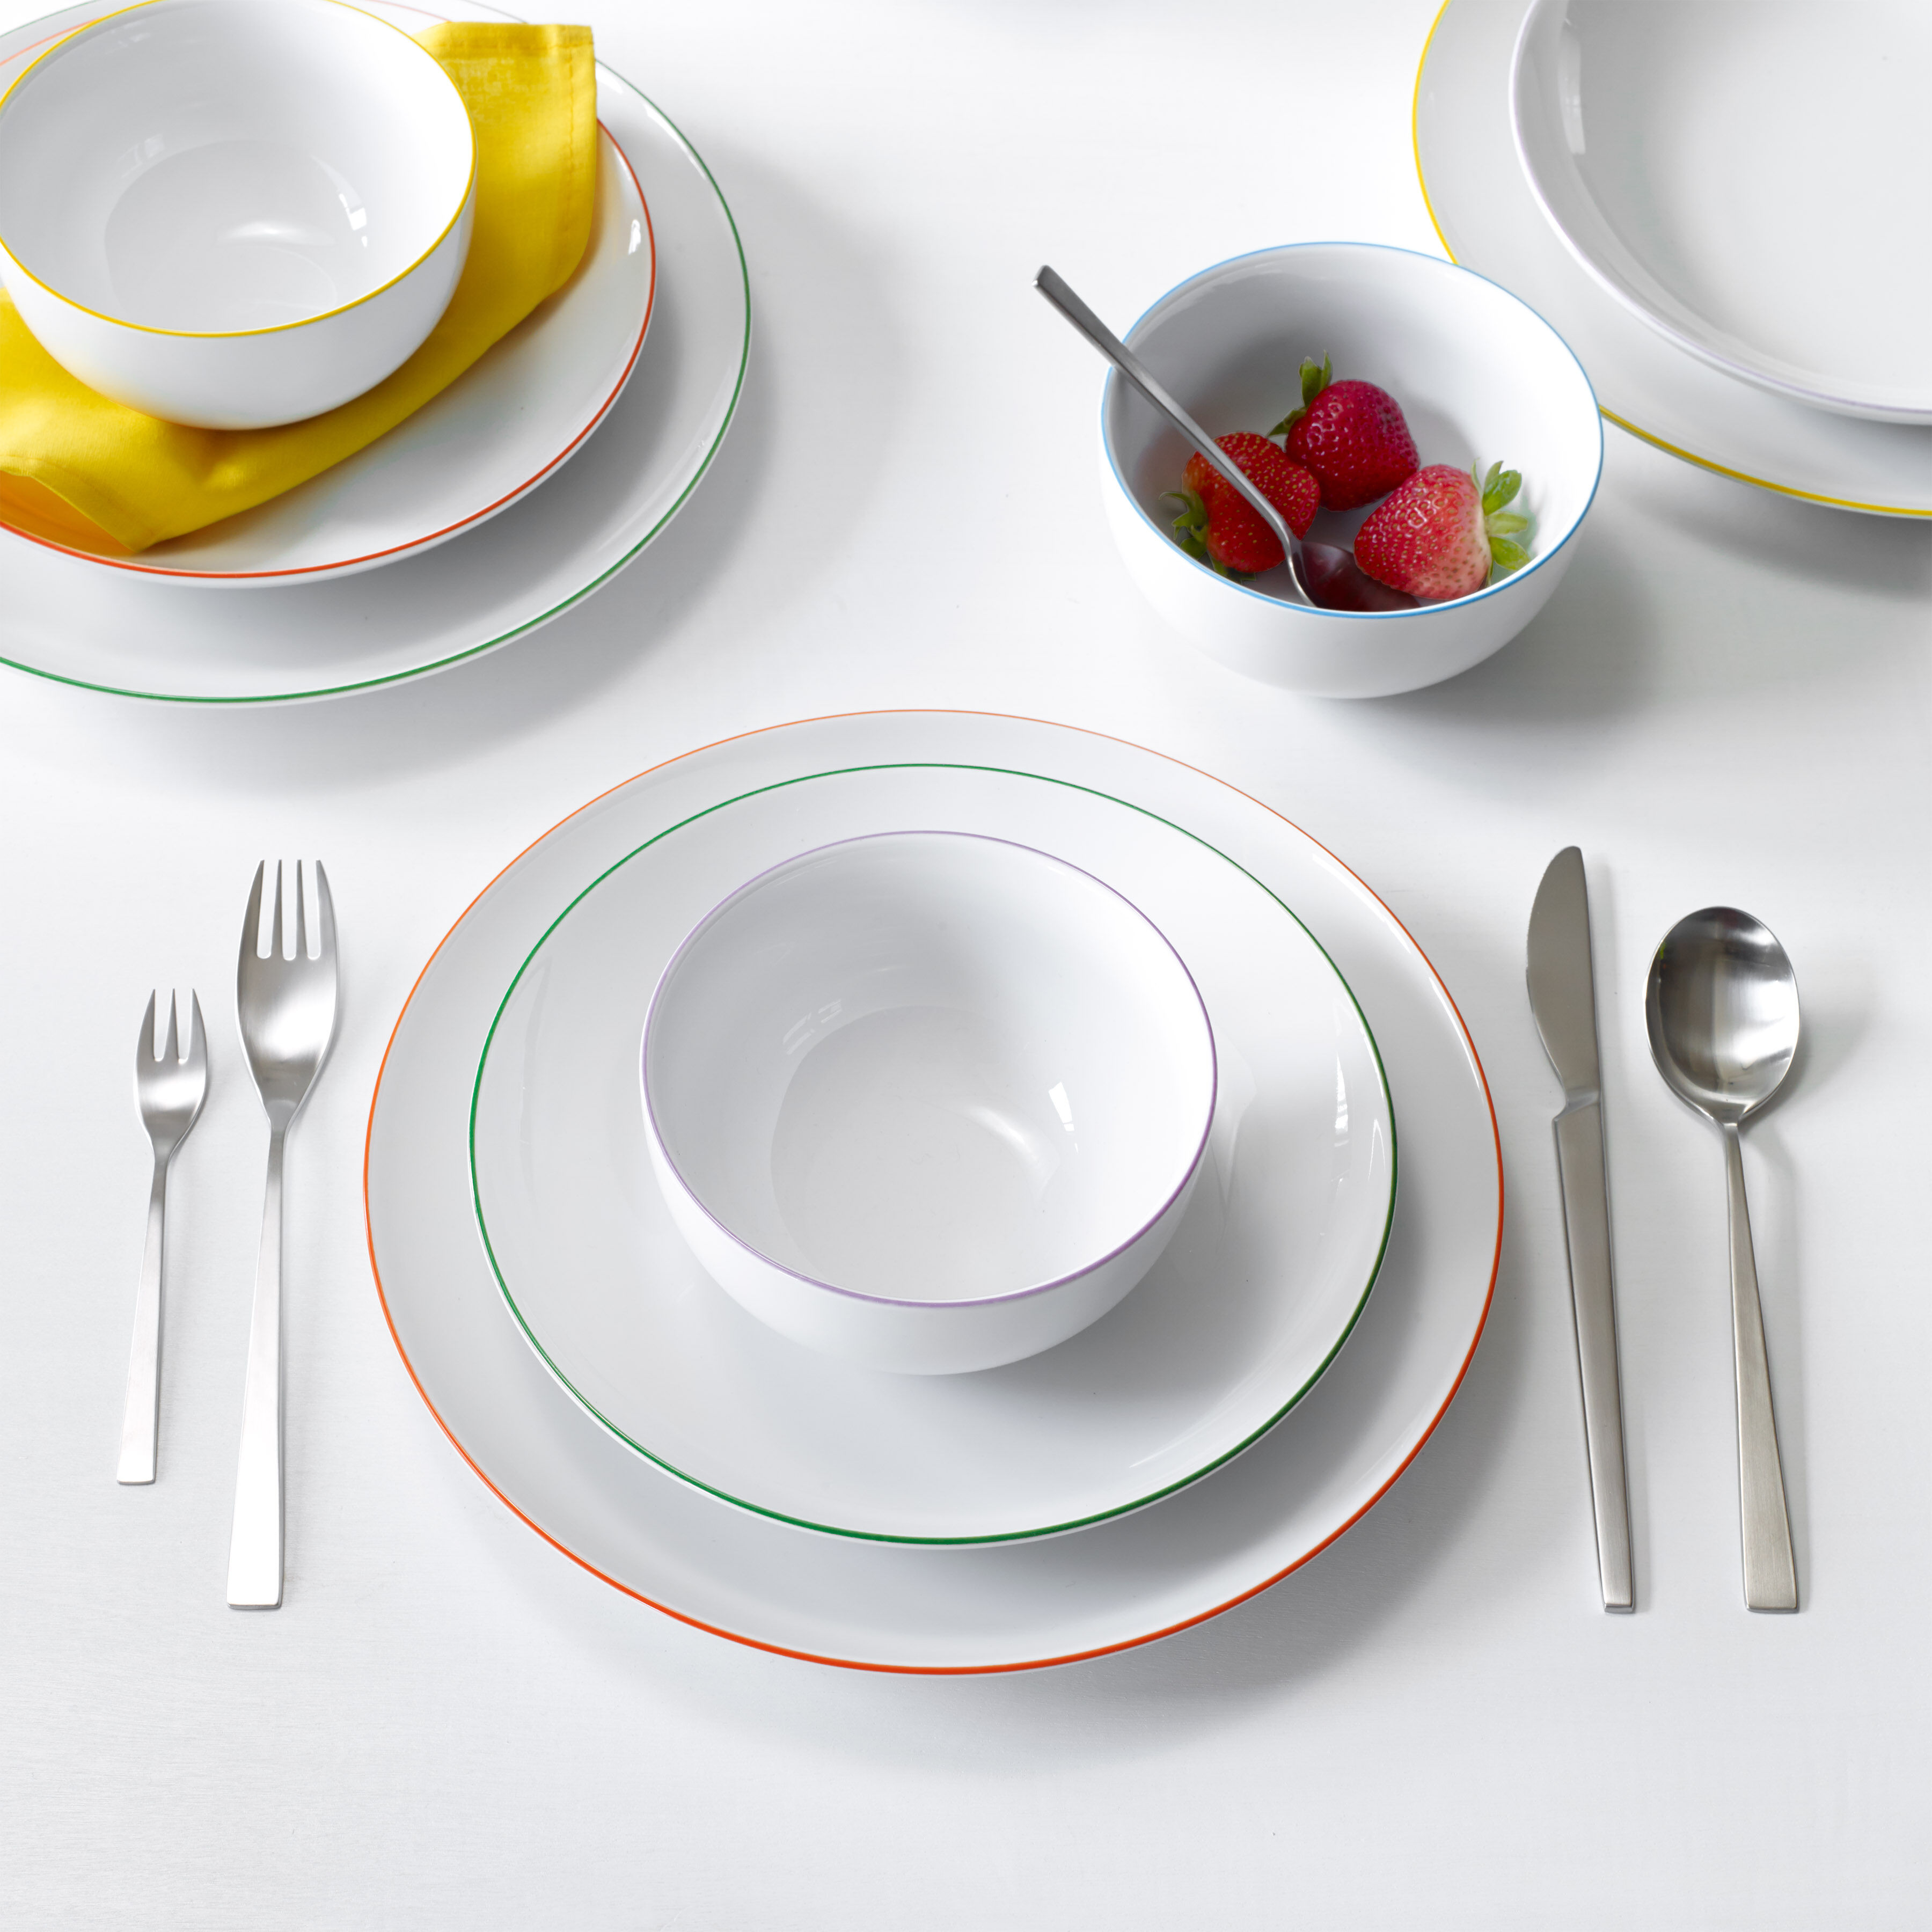 Cucina Colori Dinnerware Bowl Set in color & Cucina Colori Dinnerware Bowl Set | MoMA Design Store